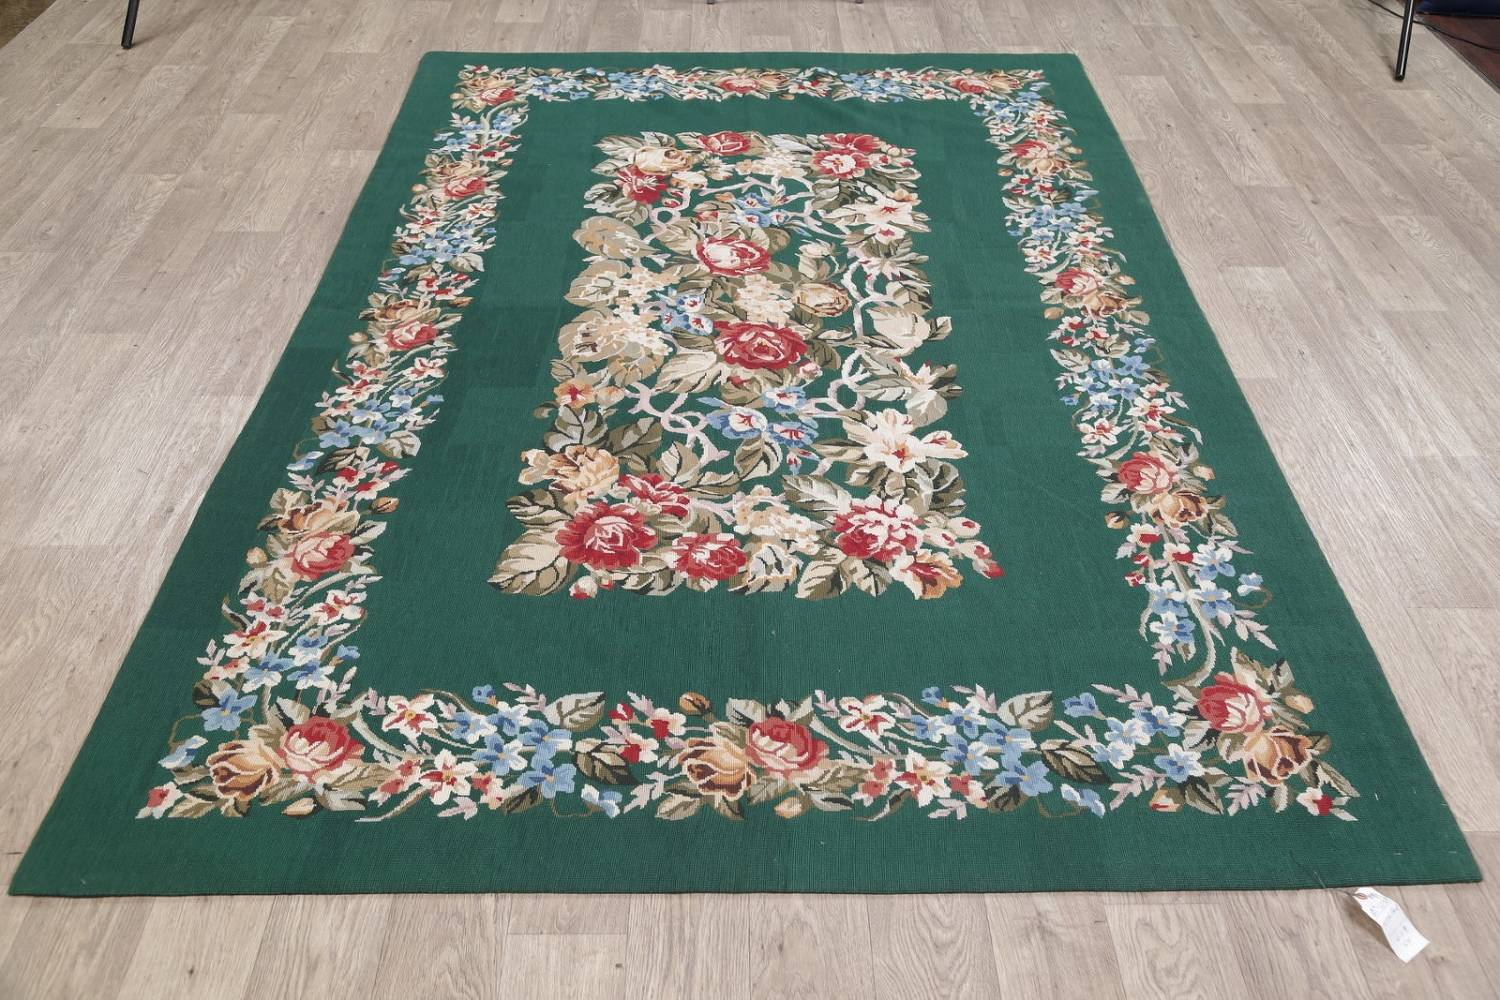 Floral Green Aubusson Chinese Oriental Hand-Woven Area Rug Wool 6x9 image 14